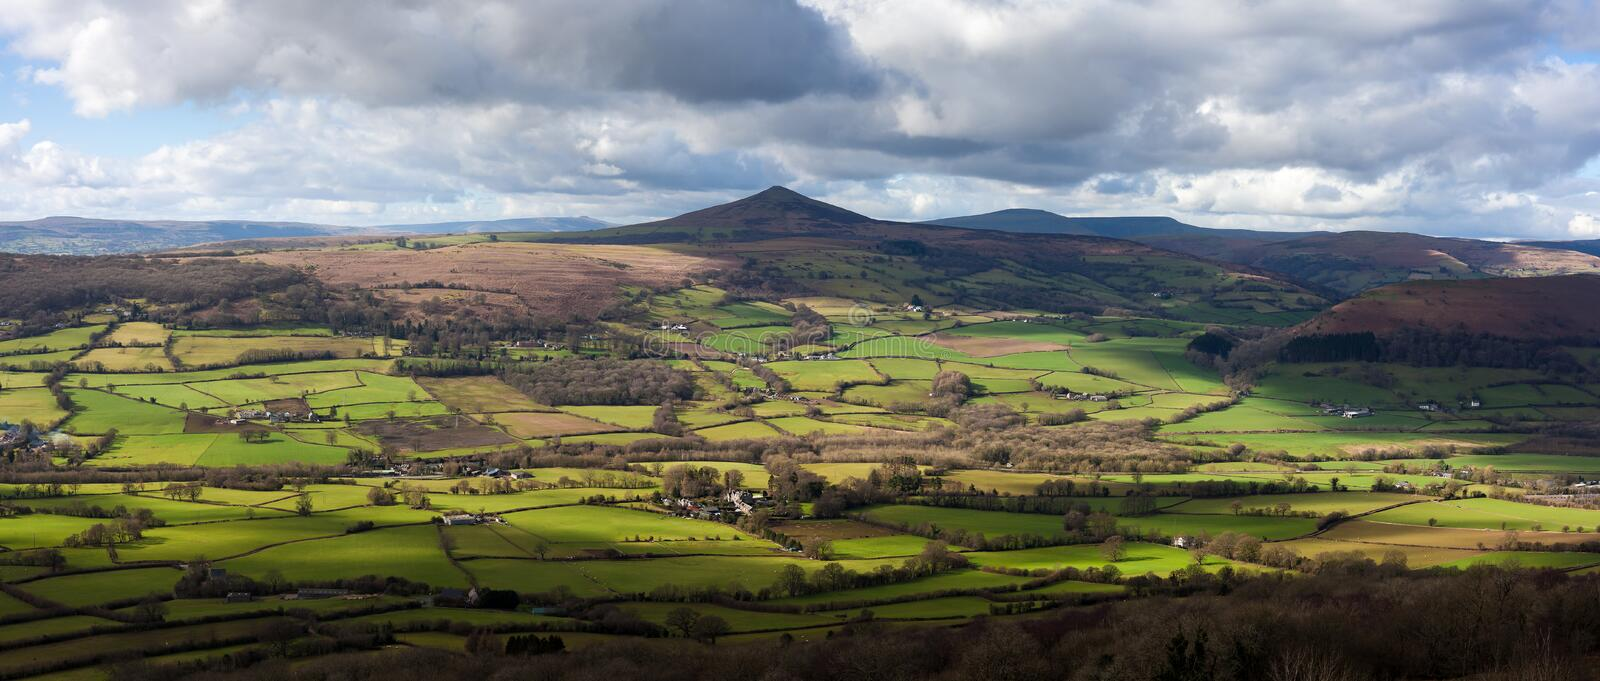 Sugarloaf Mountain Wales. The Sugarloaf, a mountain situated north west of Abergavenny in Monmouthshire, Wales royalty free stock photos